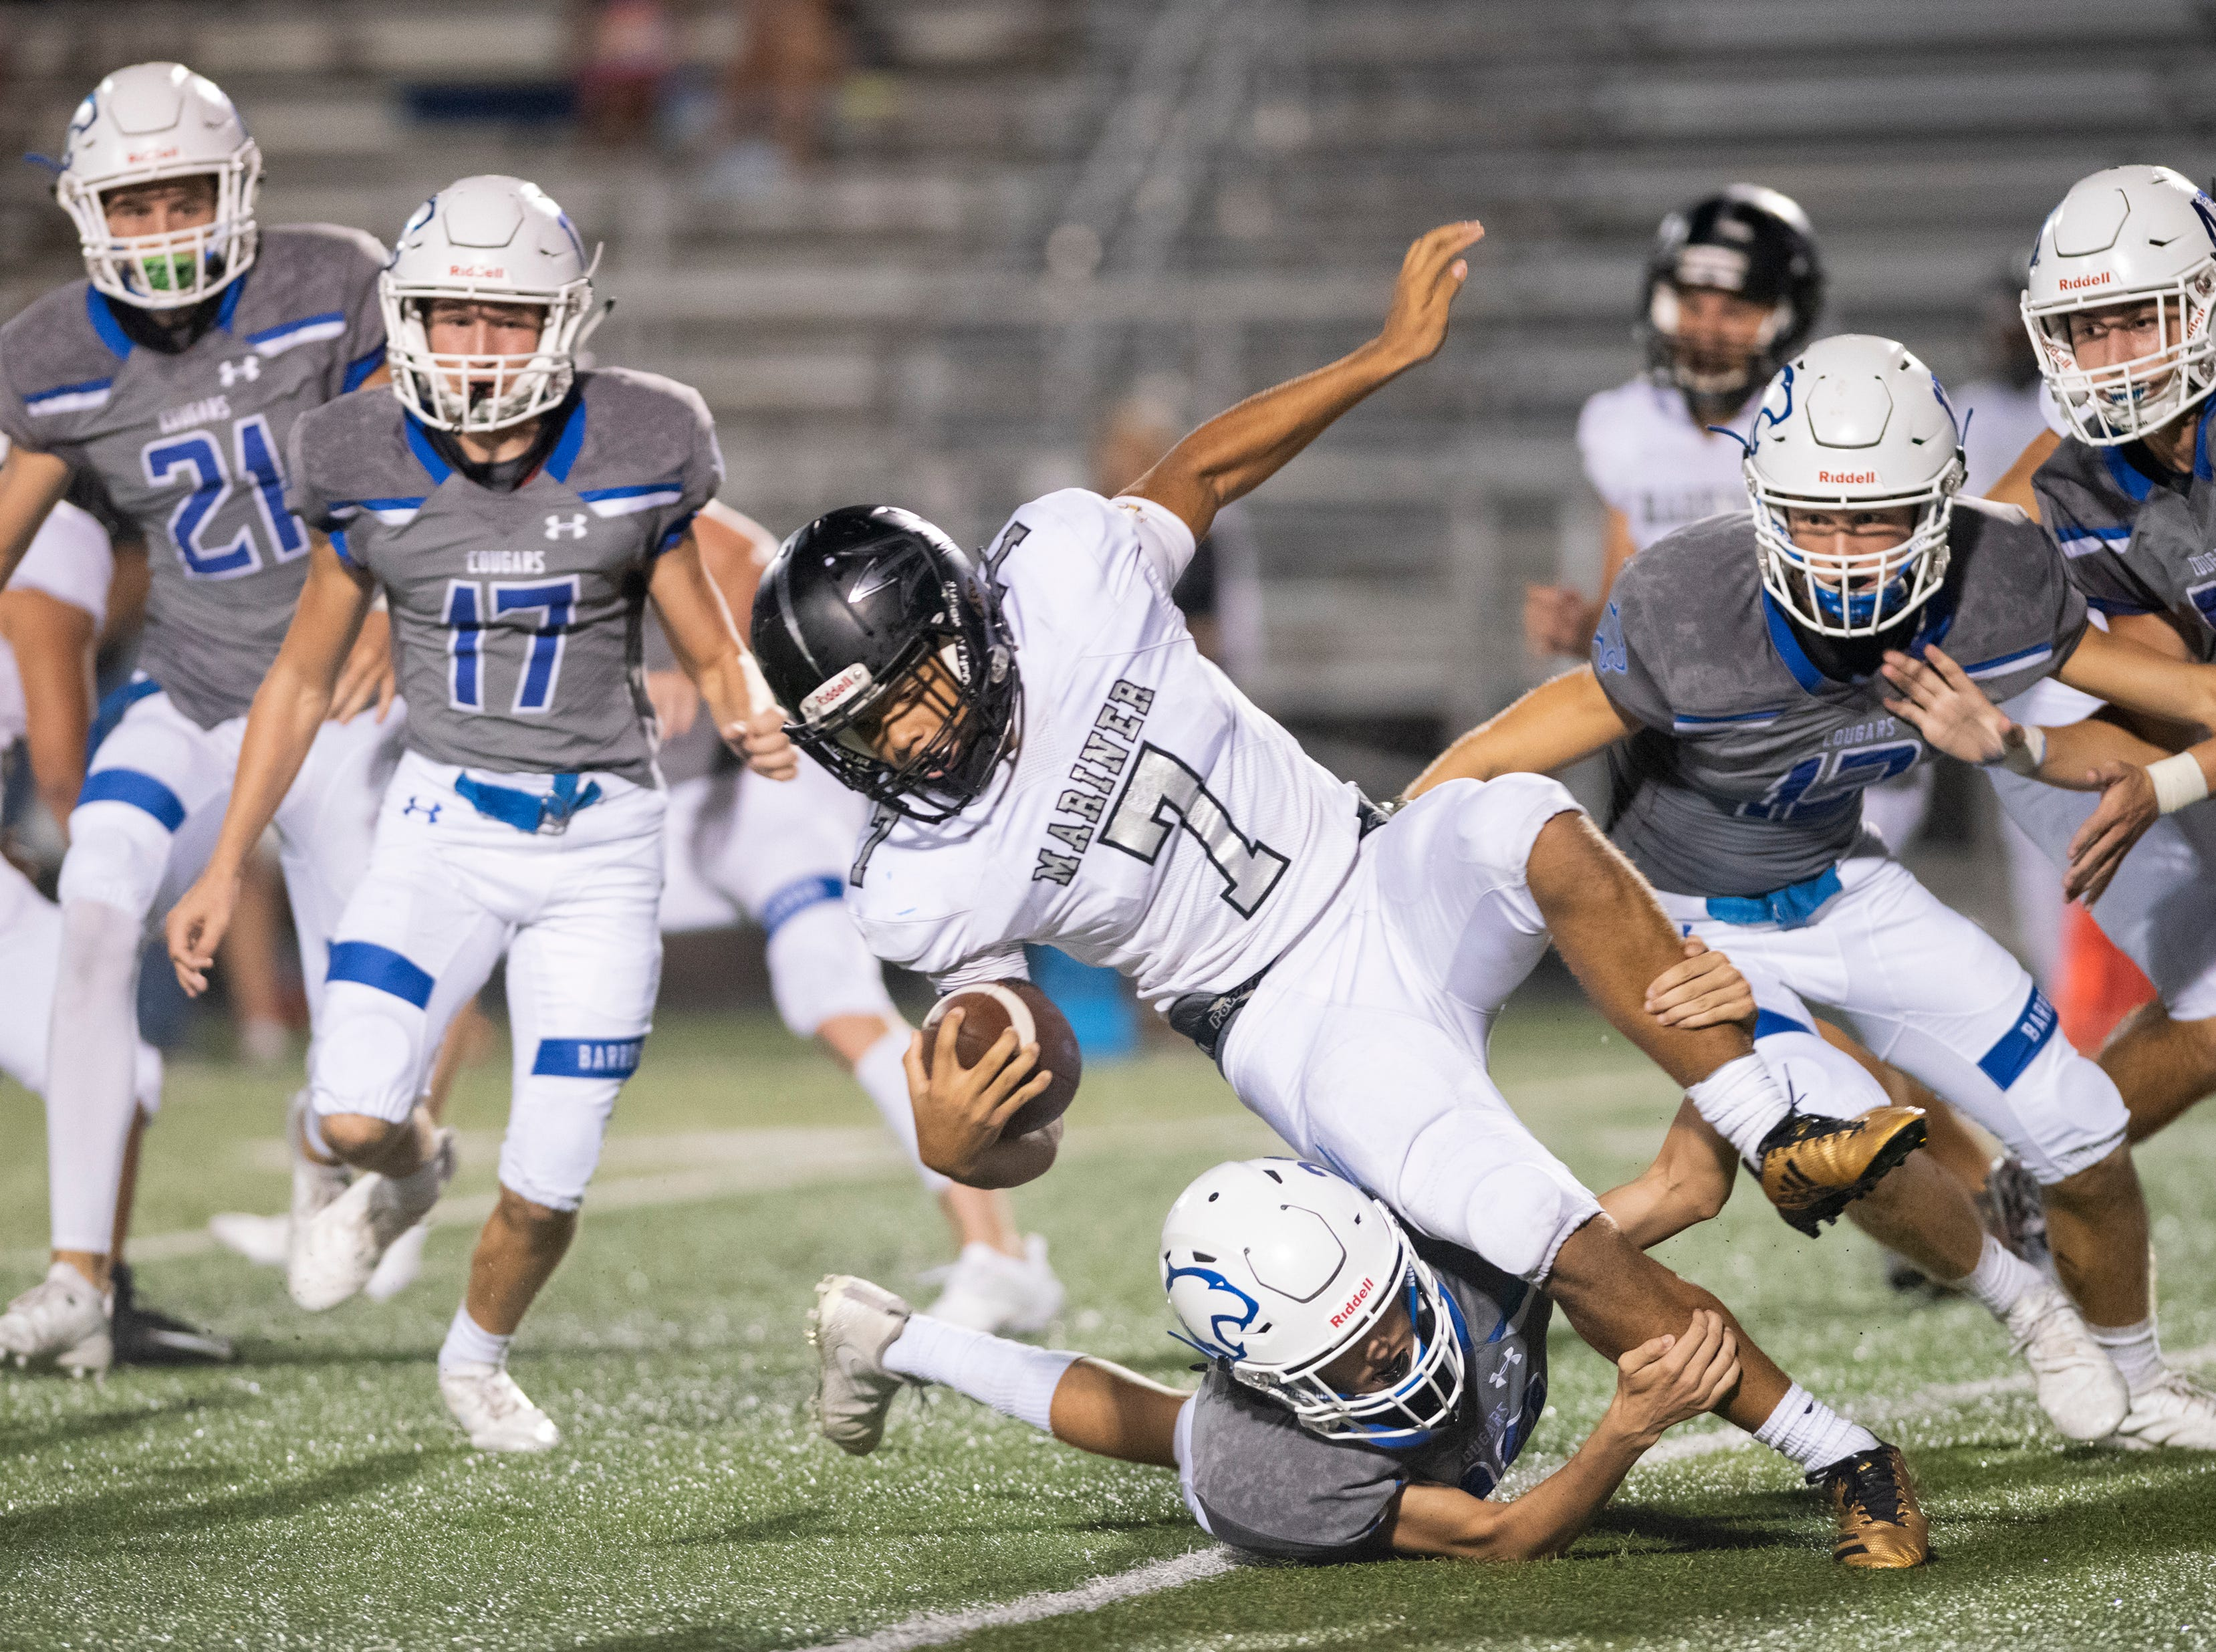 Mariner running back Jaiden Critten is hit by a Barron Collier defender during the game at Barron Collier High Friday night, September 21, 2018.